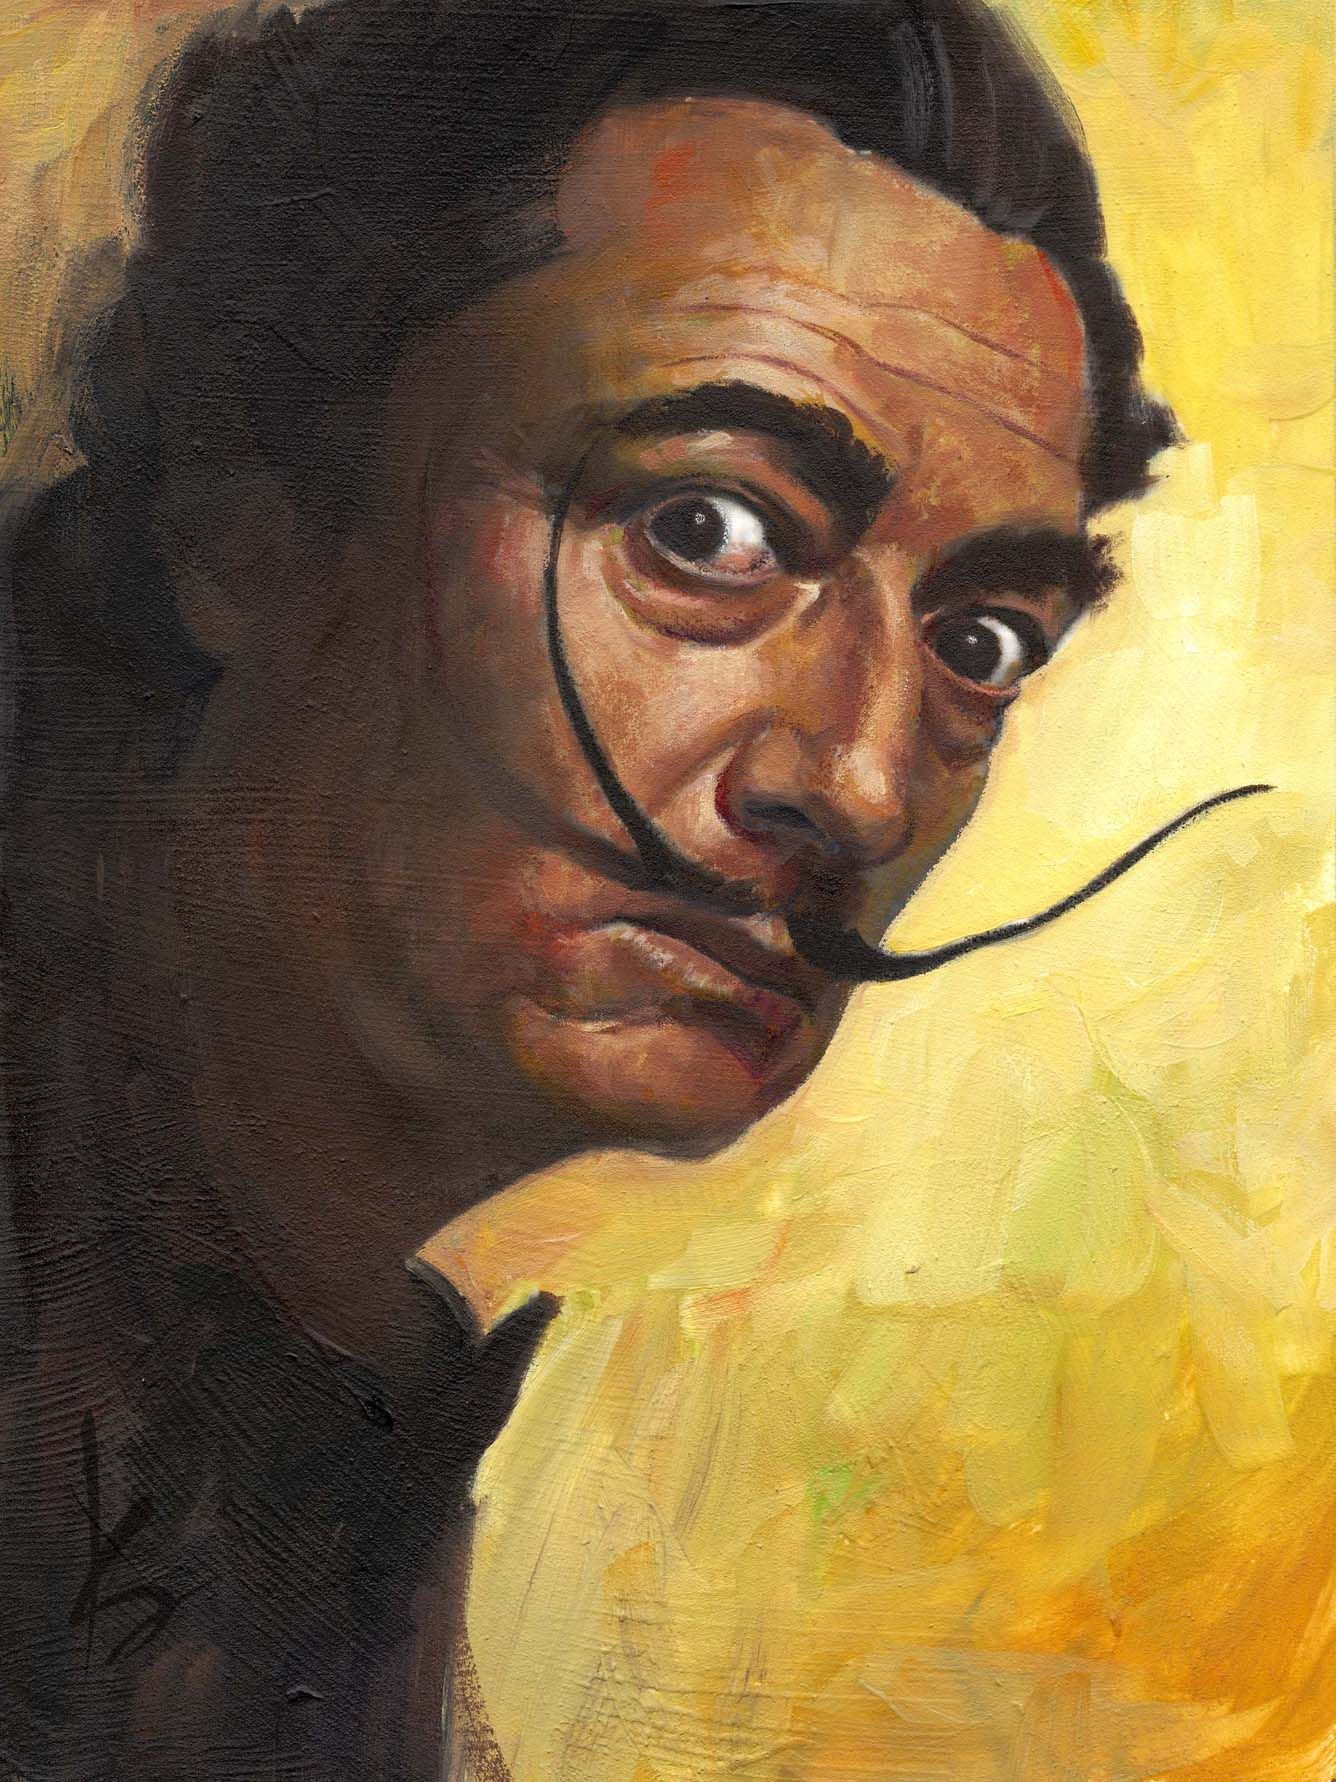 dali self portrait - Google Search | Art Lesson Ideas: Famous ...